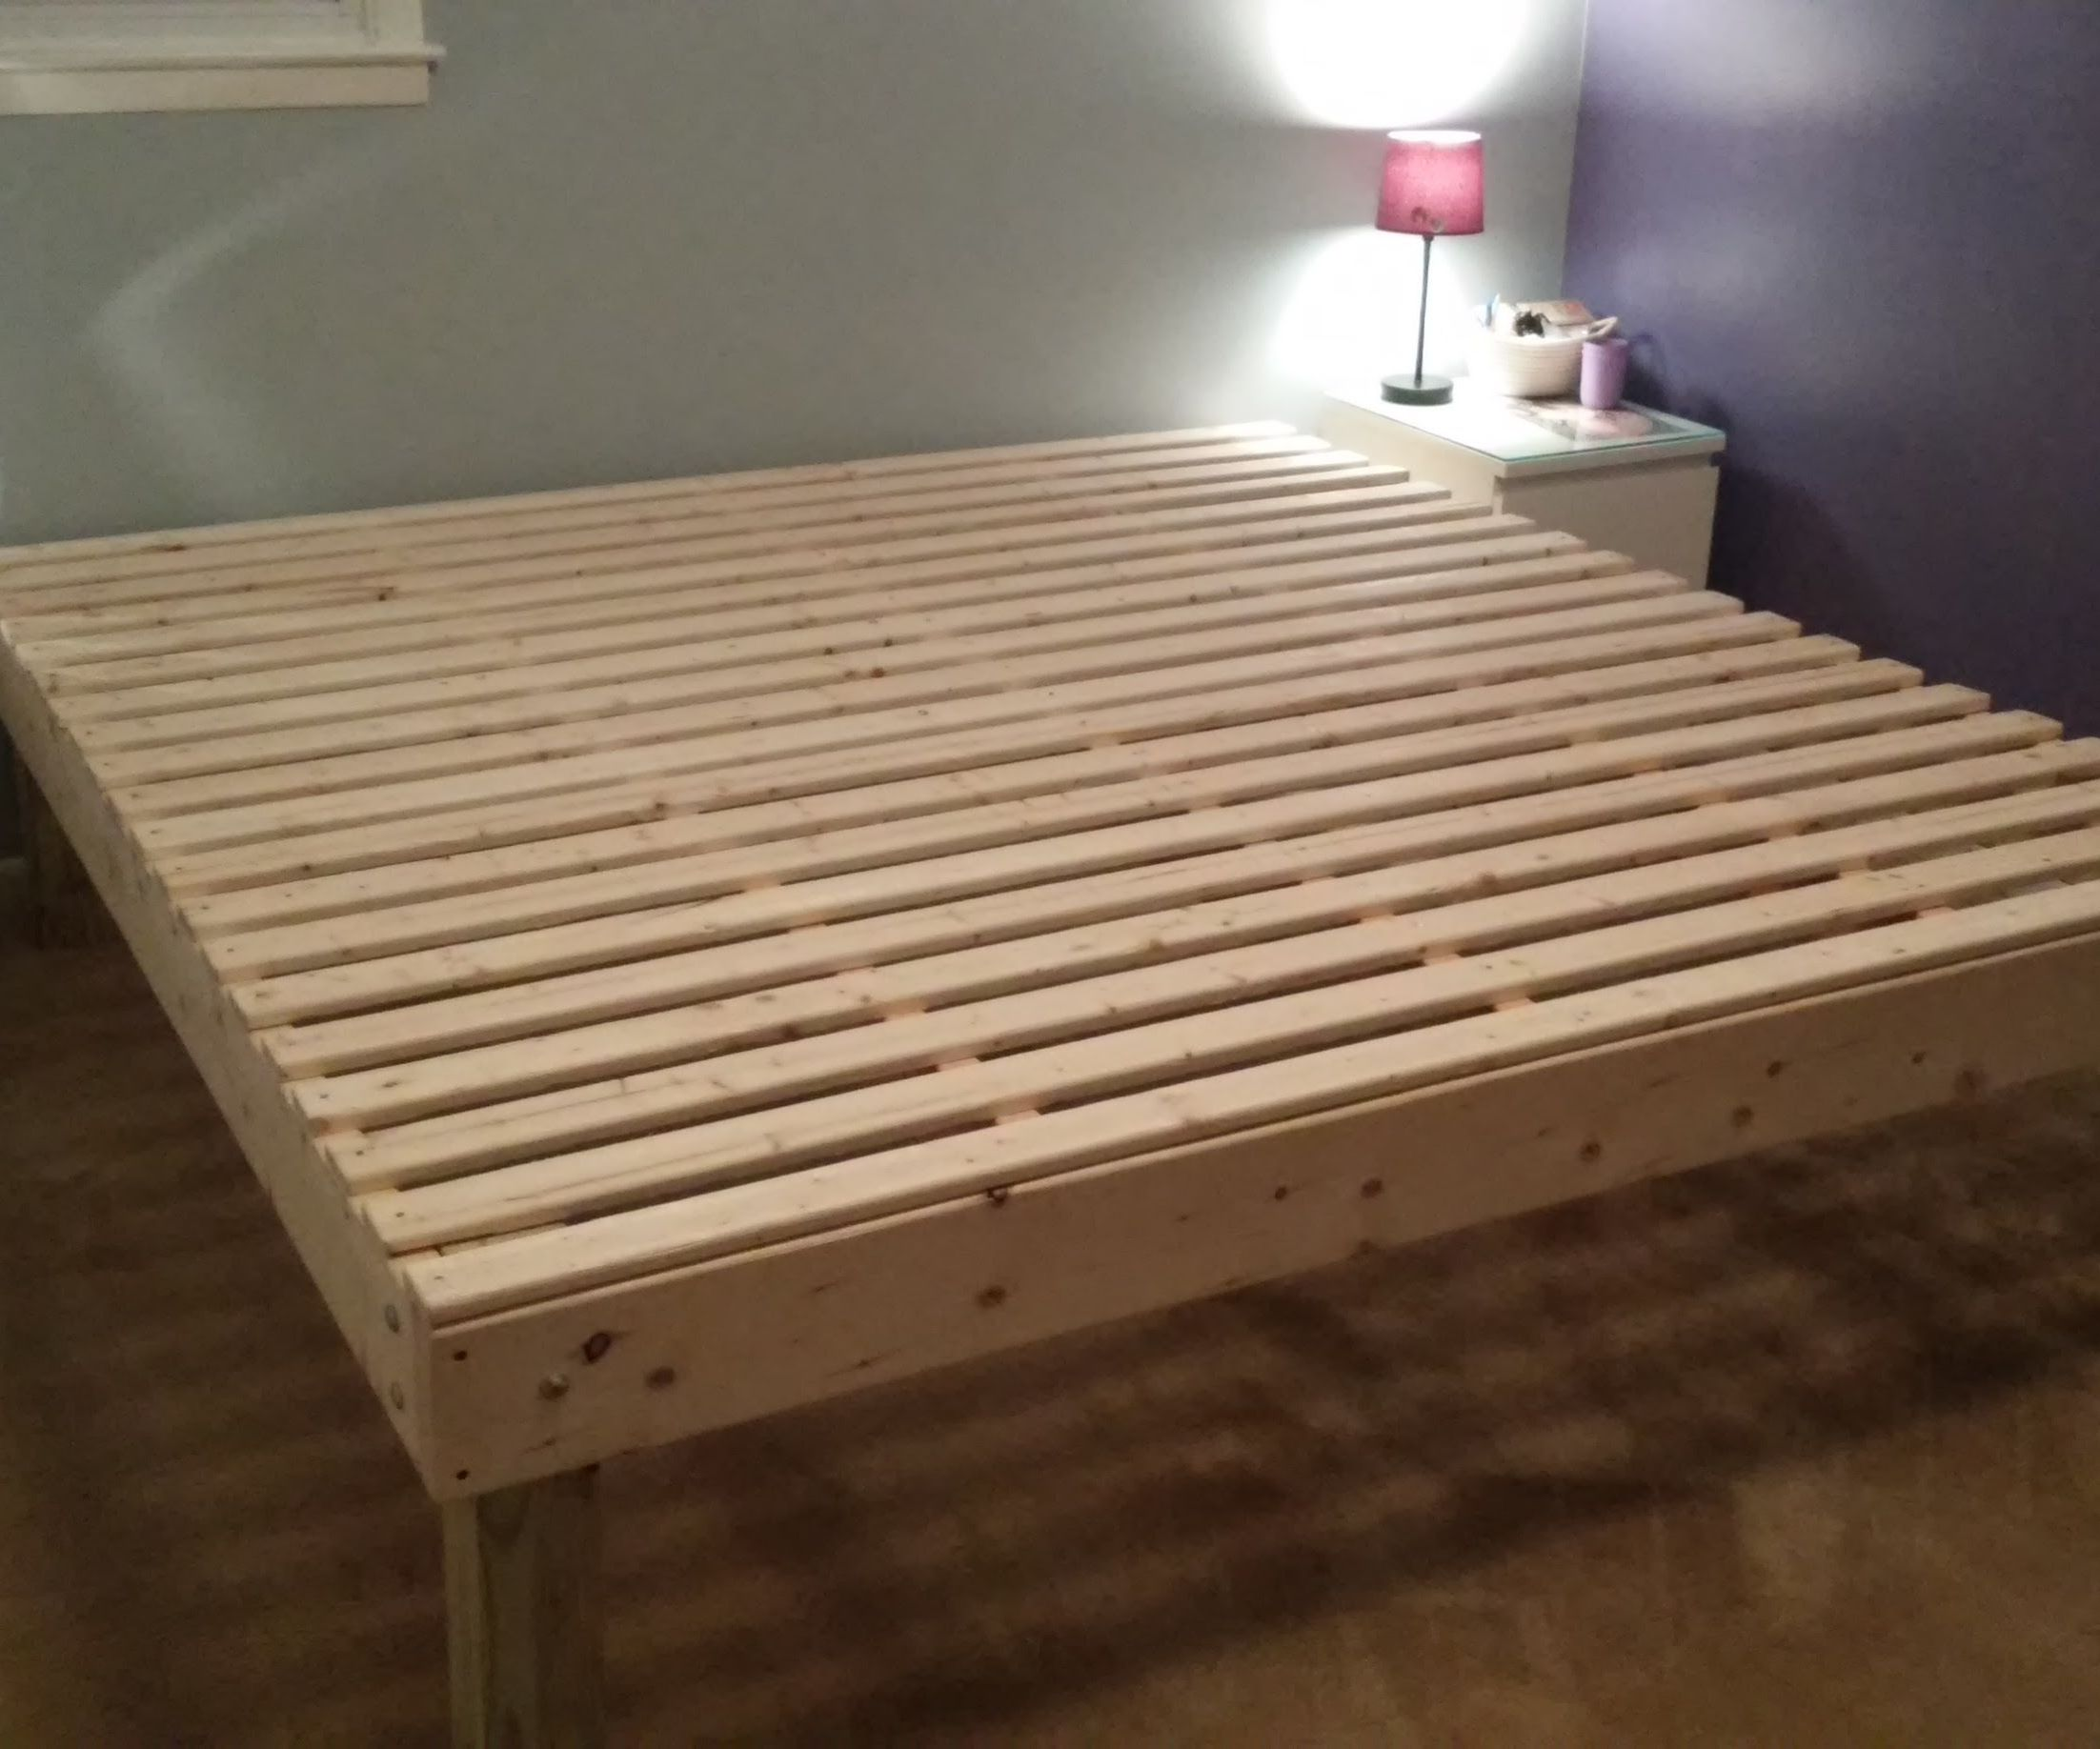 hot sales 0fa47 24f22 Foam Mattress Bed Frame for Under $100: 9 Steps (with Pictures)